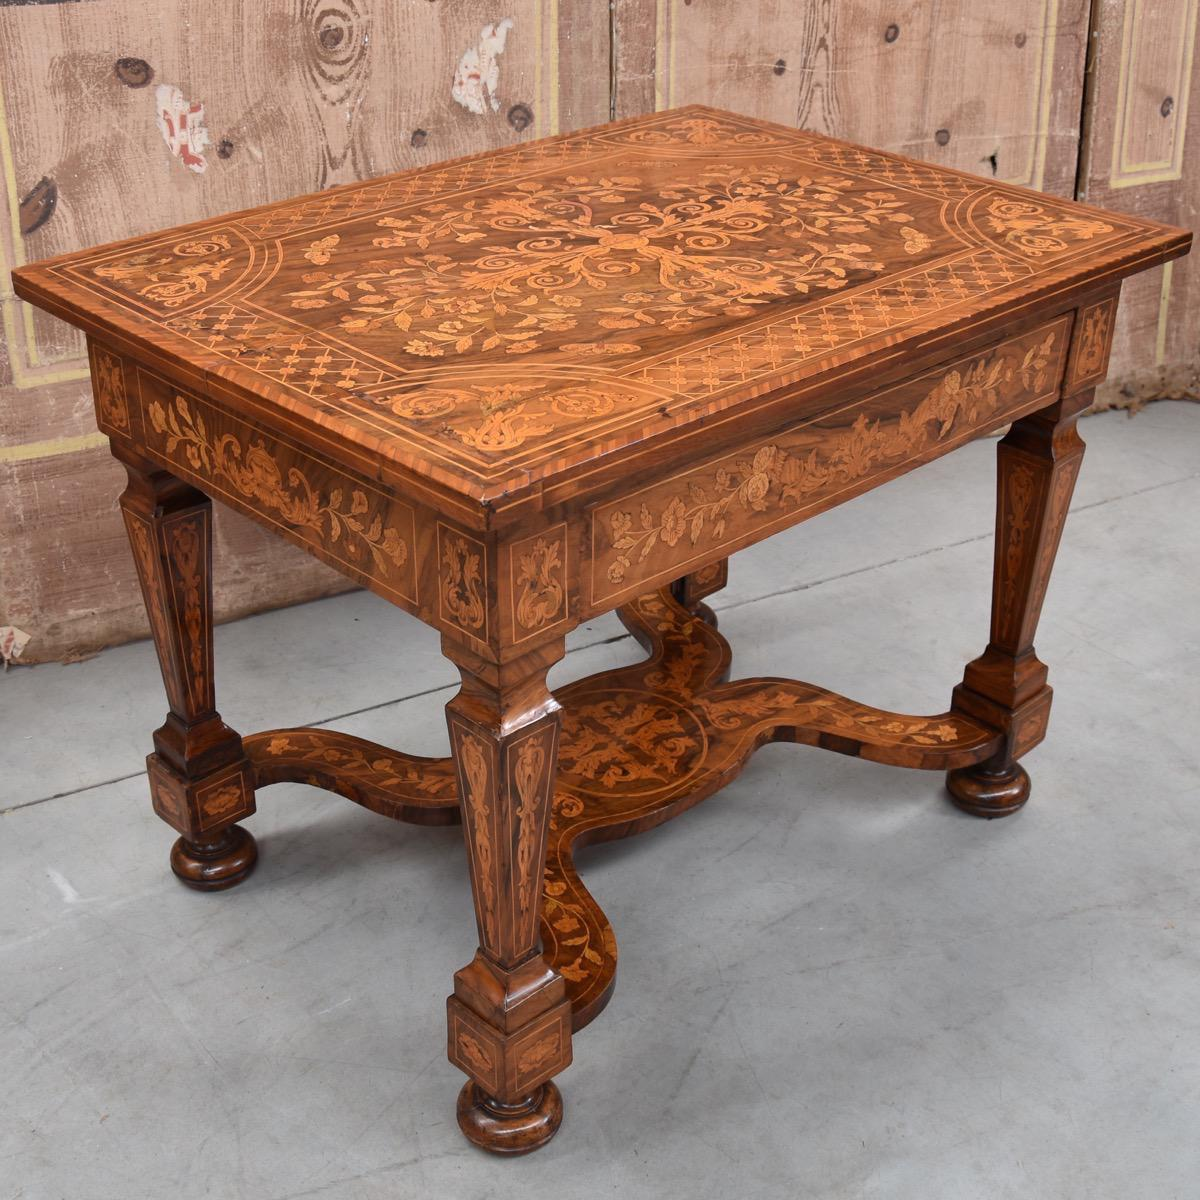 dutch marquetry table paul de grande antique. Black Bedroom Furniture Sets. Home Design Ideas